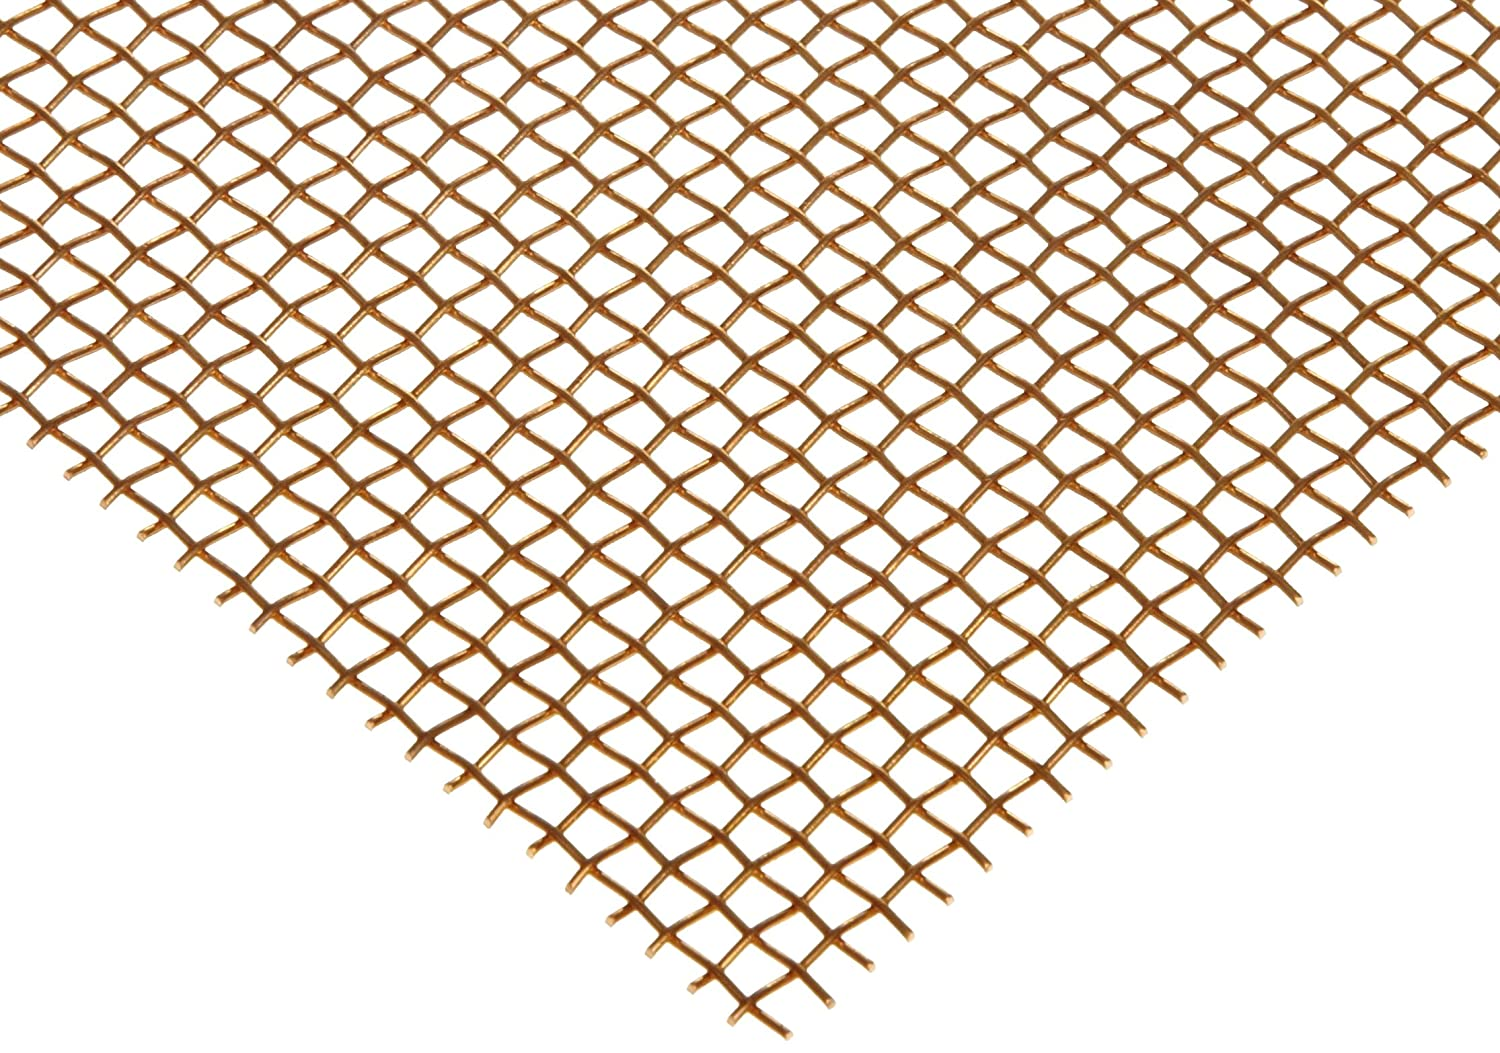 46/% Open Area Bronze Woven Mesh Sheet Mill 0.016 Wire Diameter Unpolished Finish 12 Width ASTM E2016-06 24 Length